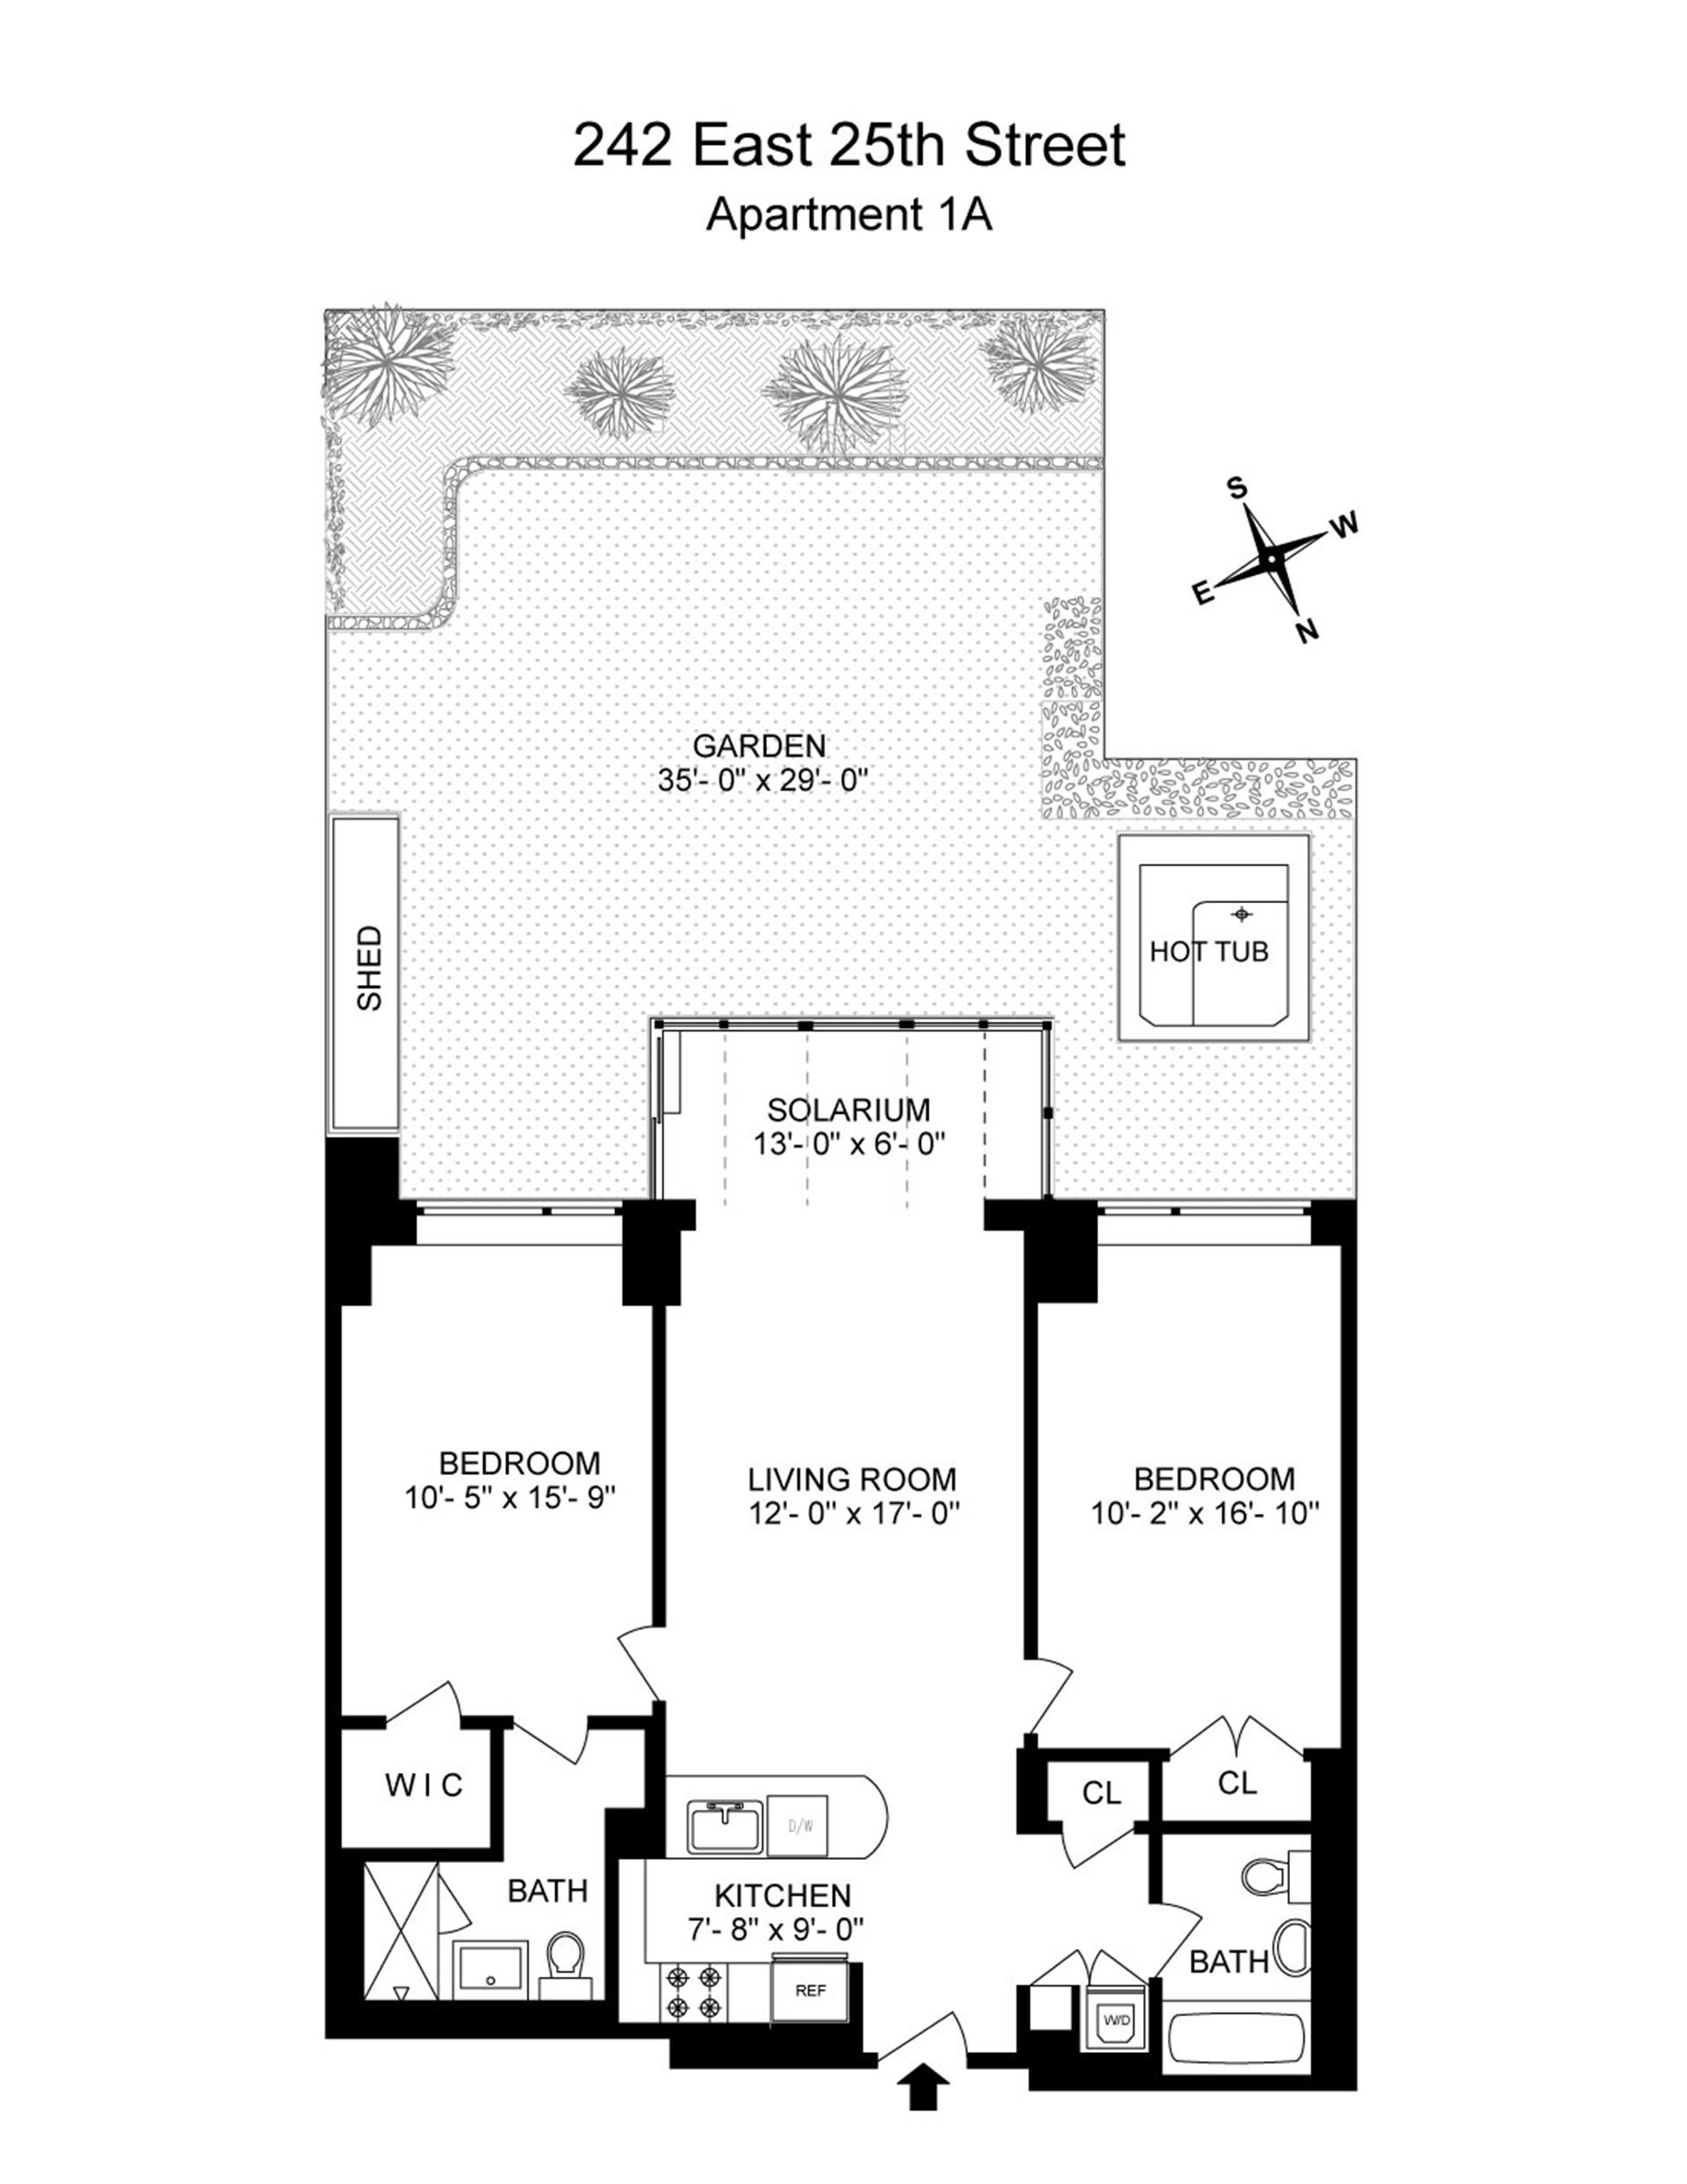 Floor plan of 242 East 25th St, GRDNA - Kips Bay, New York